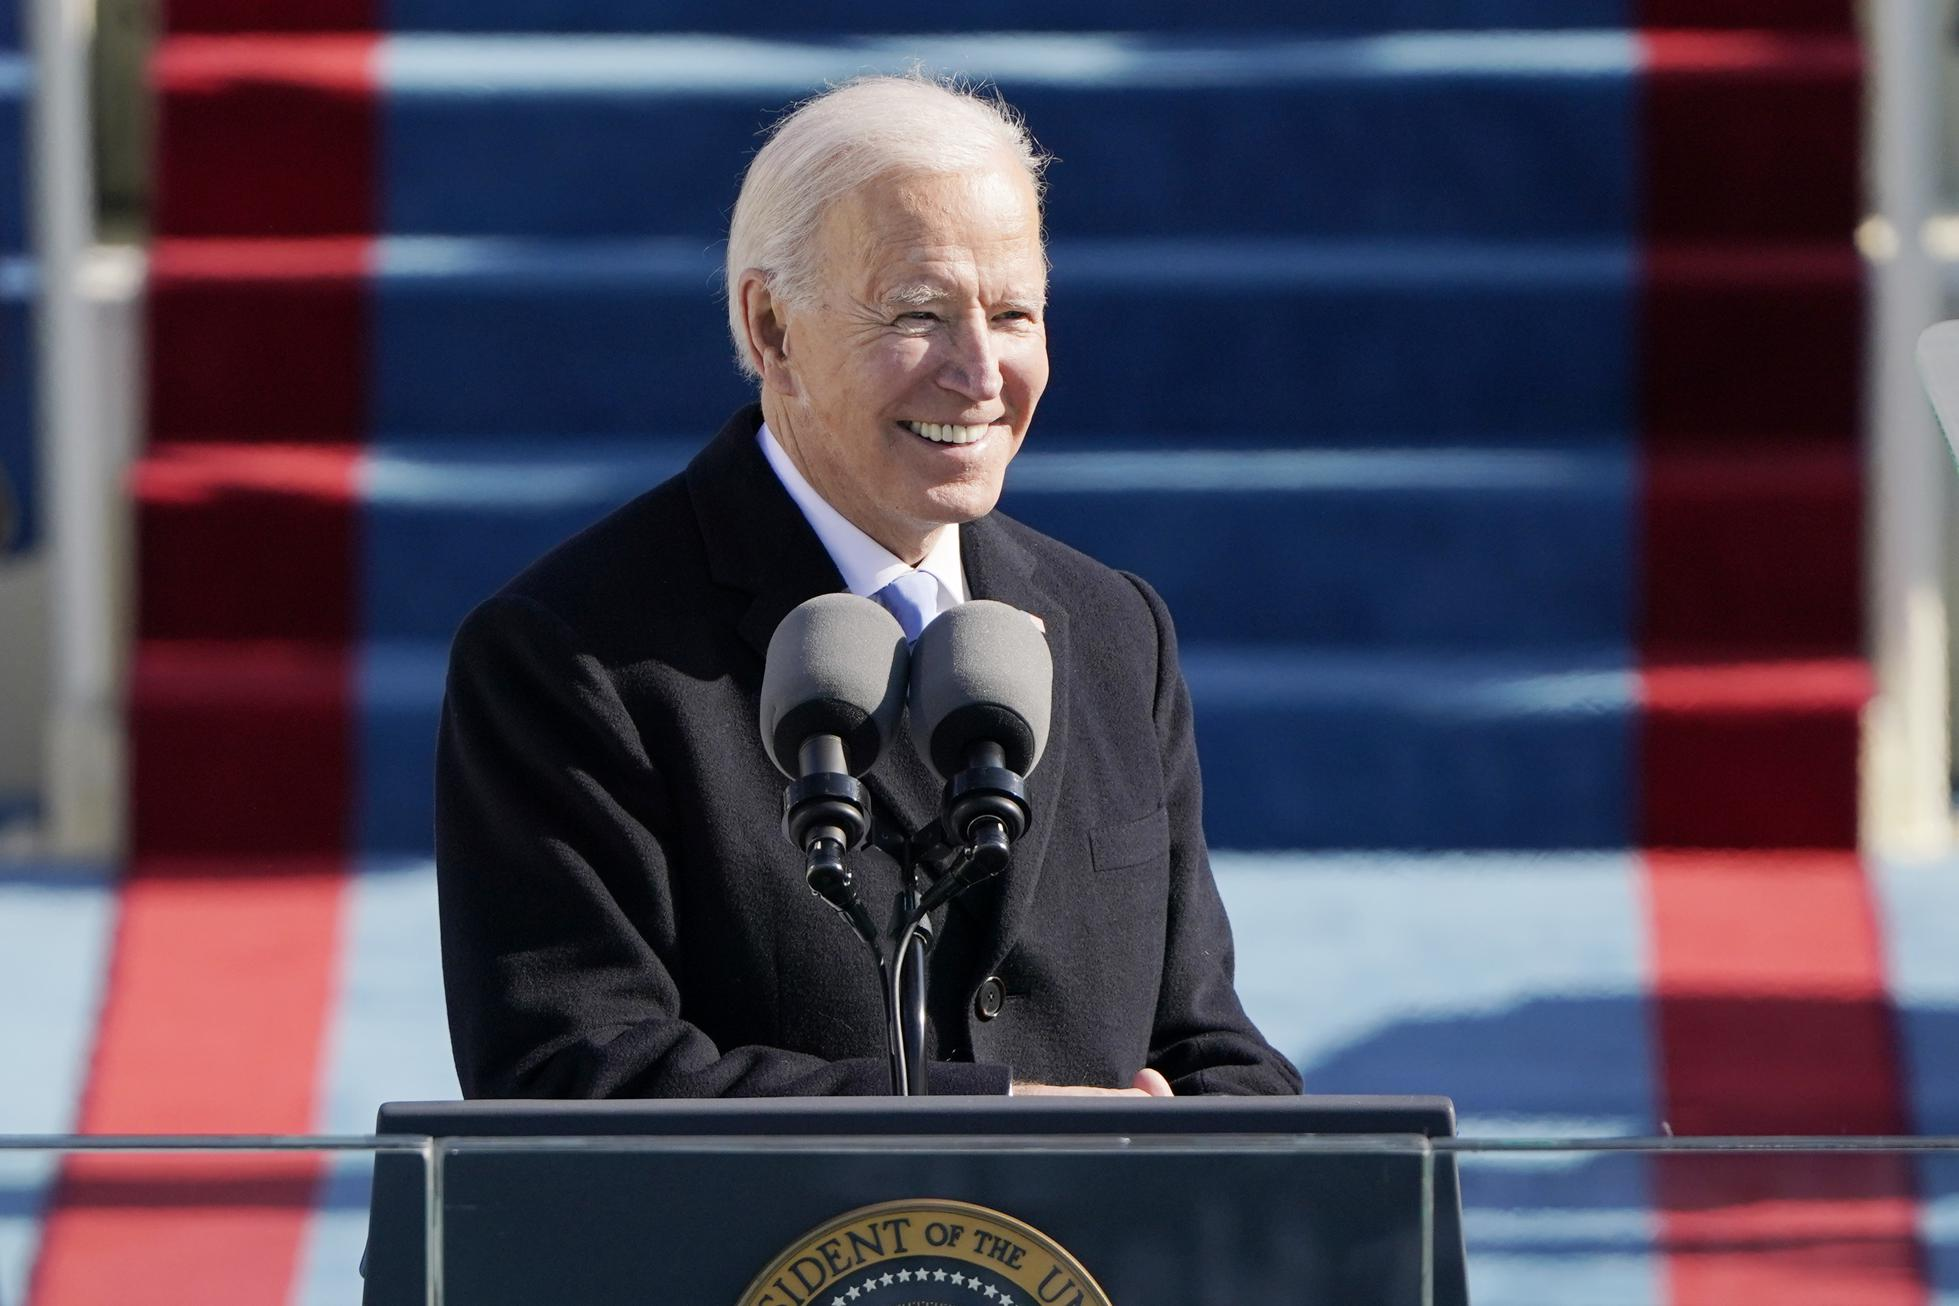 Joe Biden presents $1.8 trillion education plan funded by taxes for the wealthy